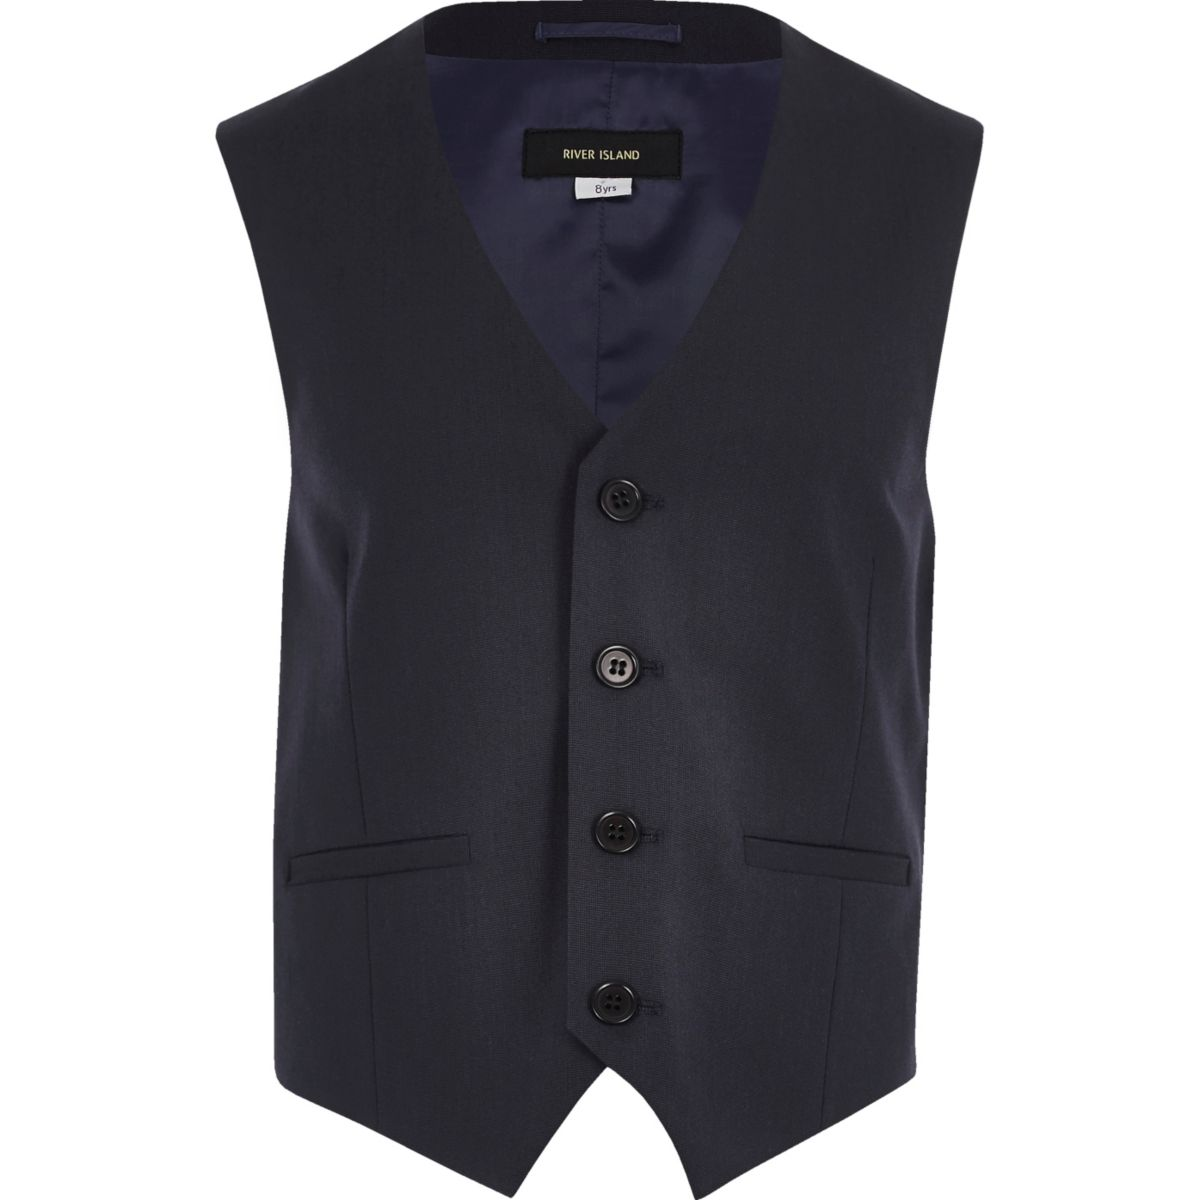 Boys navy blue suit vest